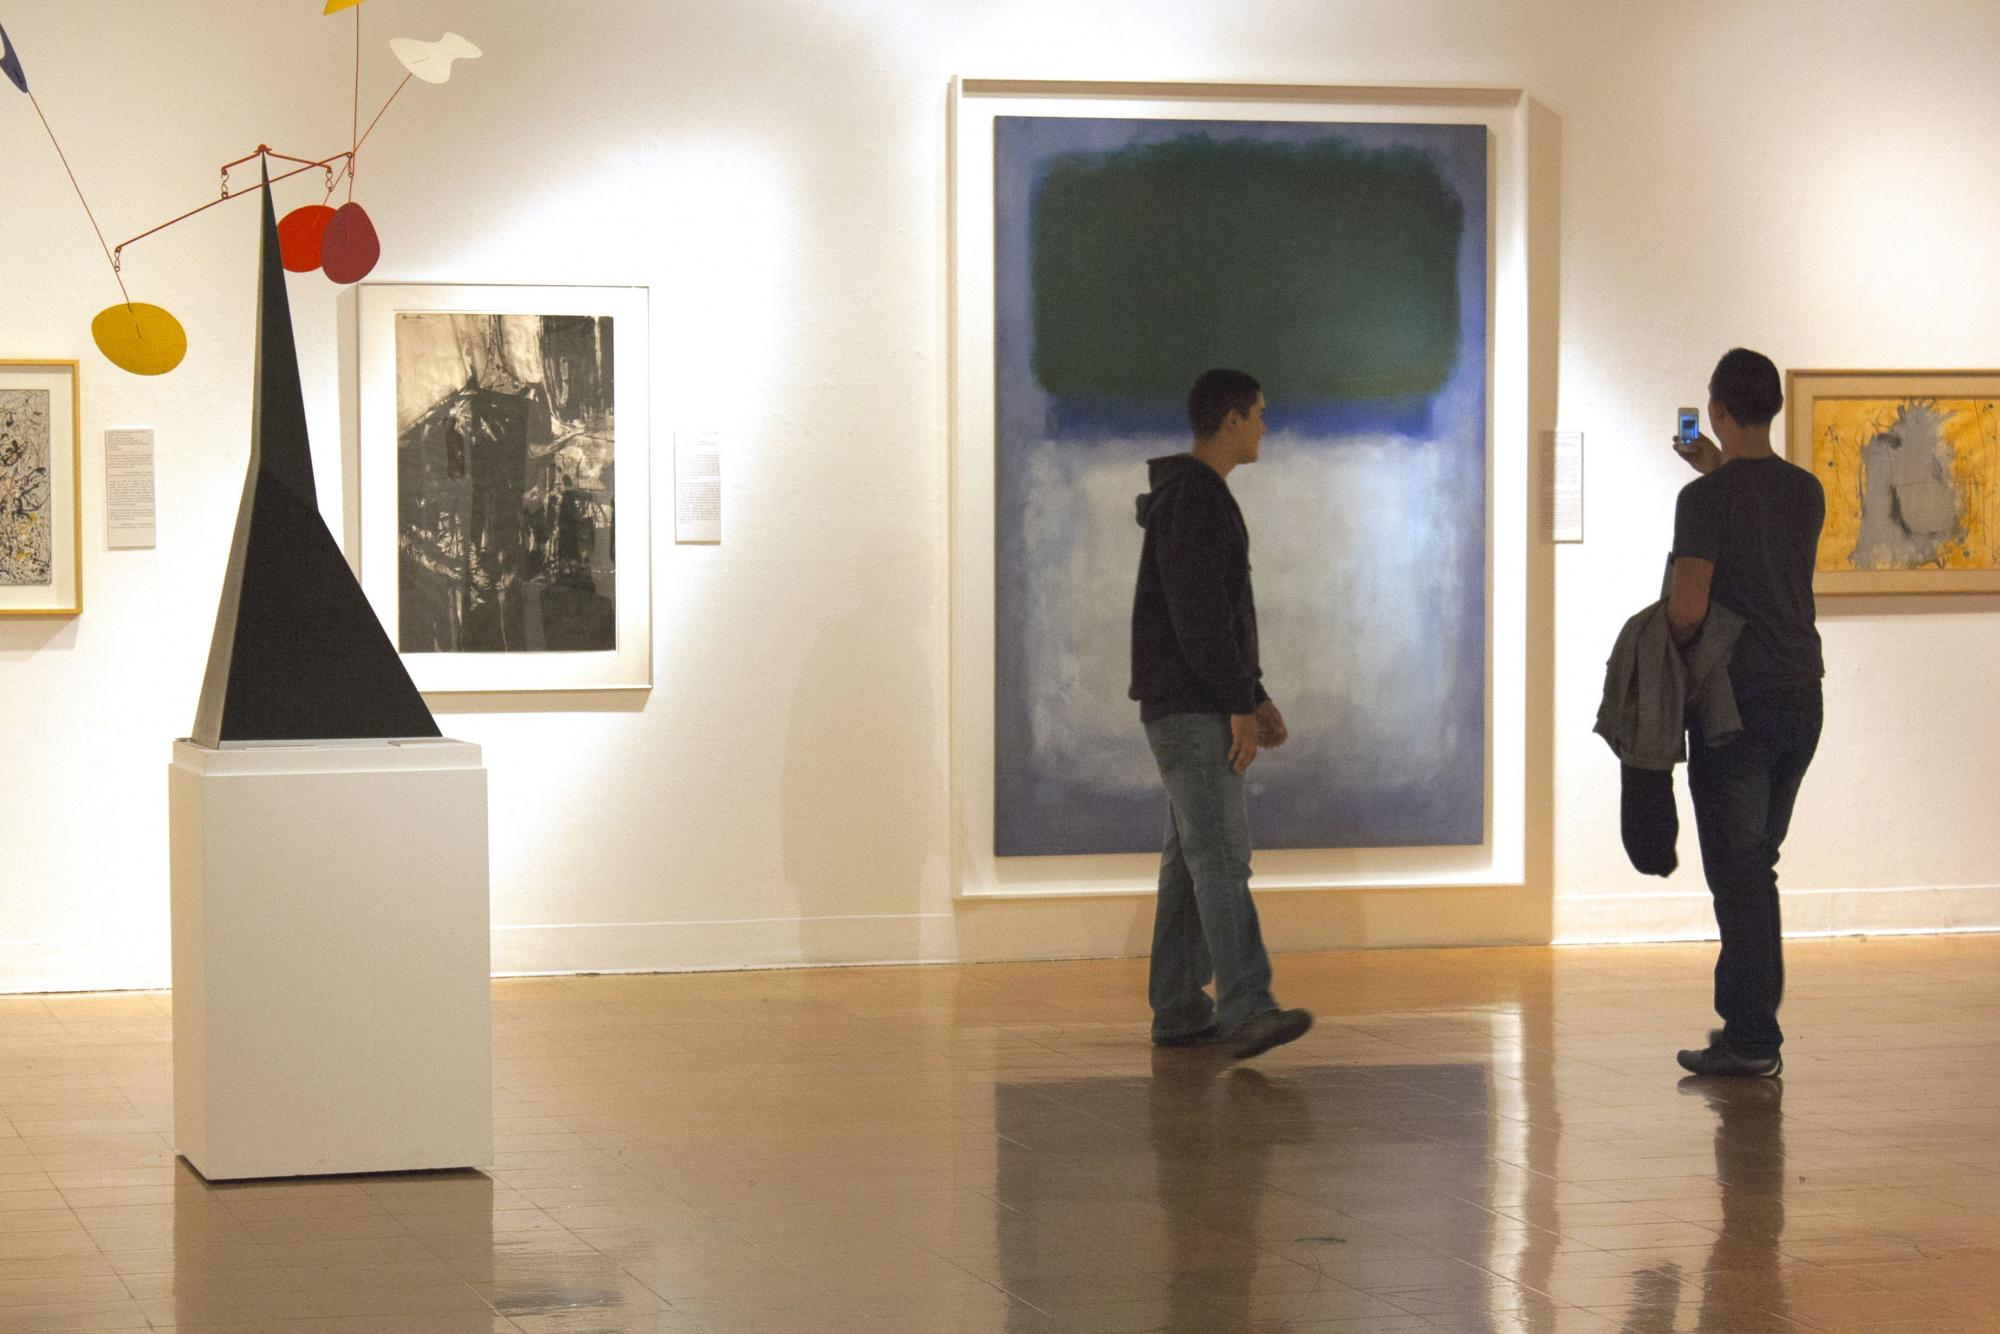 The UAMA holdings include works by globally-recognized artists like Mark Rothko, Georgia O'Keeffe and Andy Warhol.